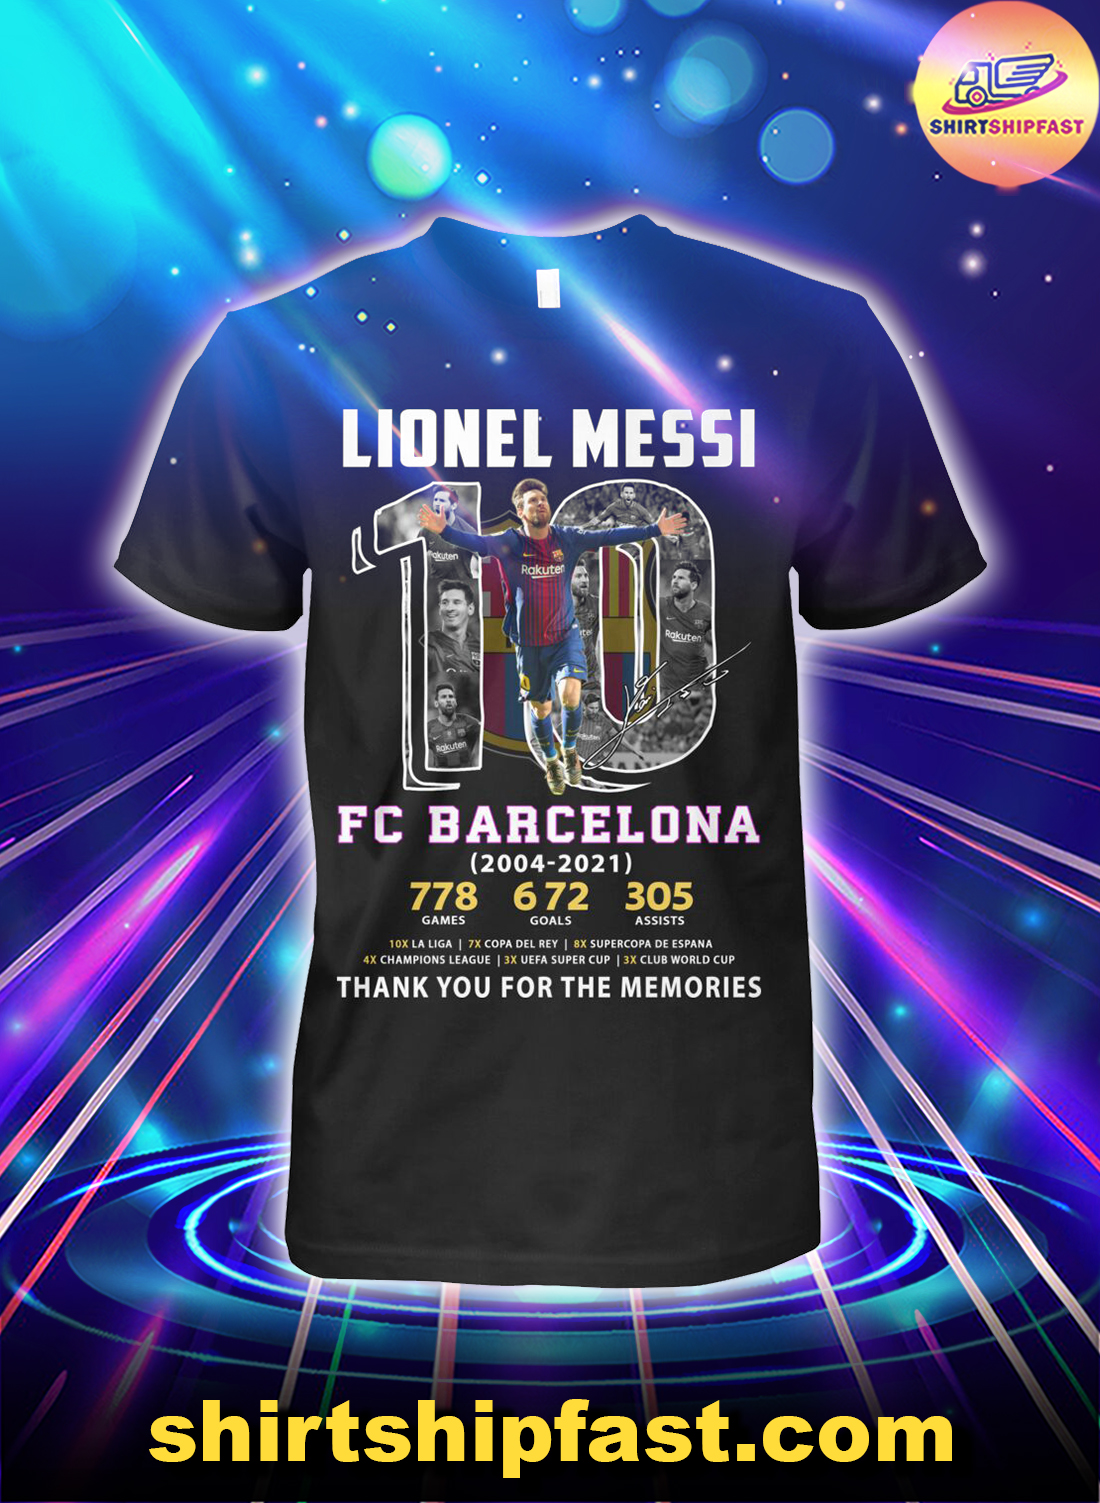 Lionel Messi FC Barcelona 2004 2021 thank you for the memories shirt